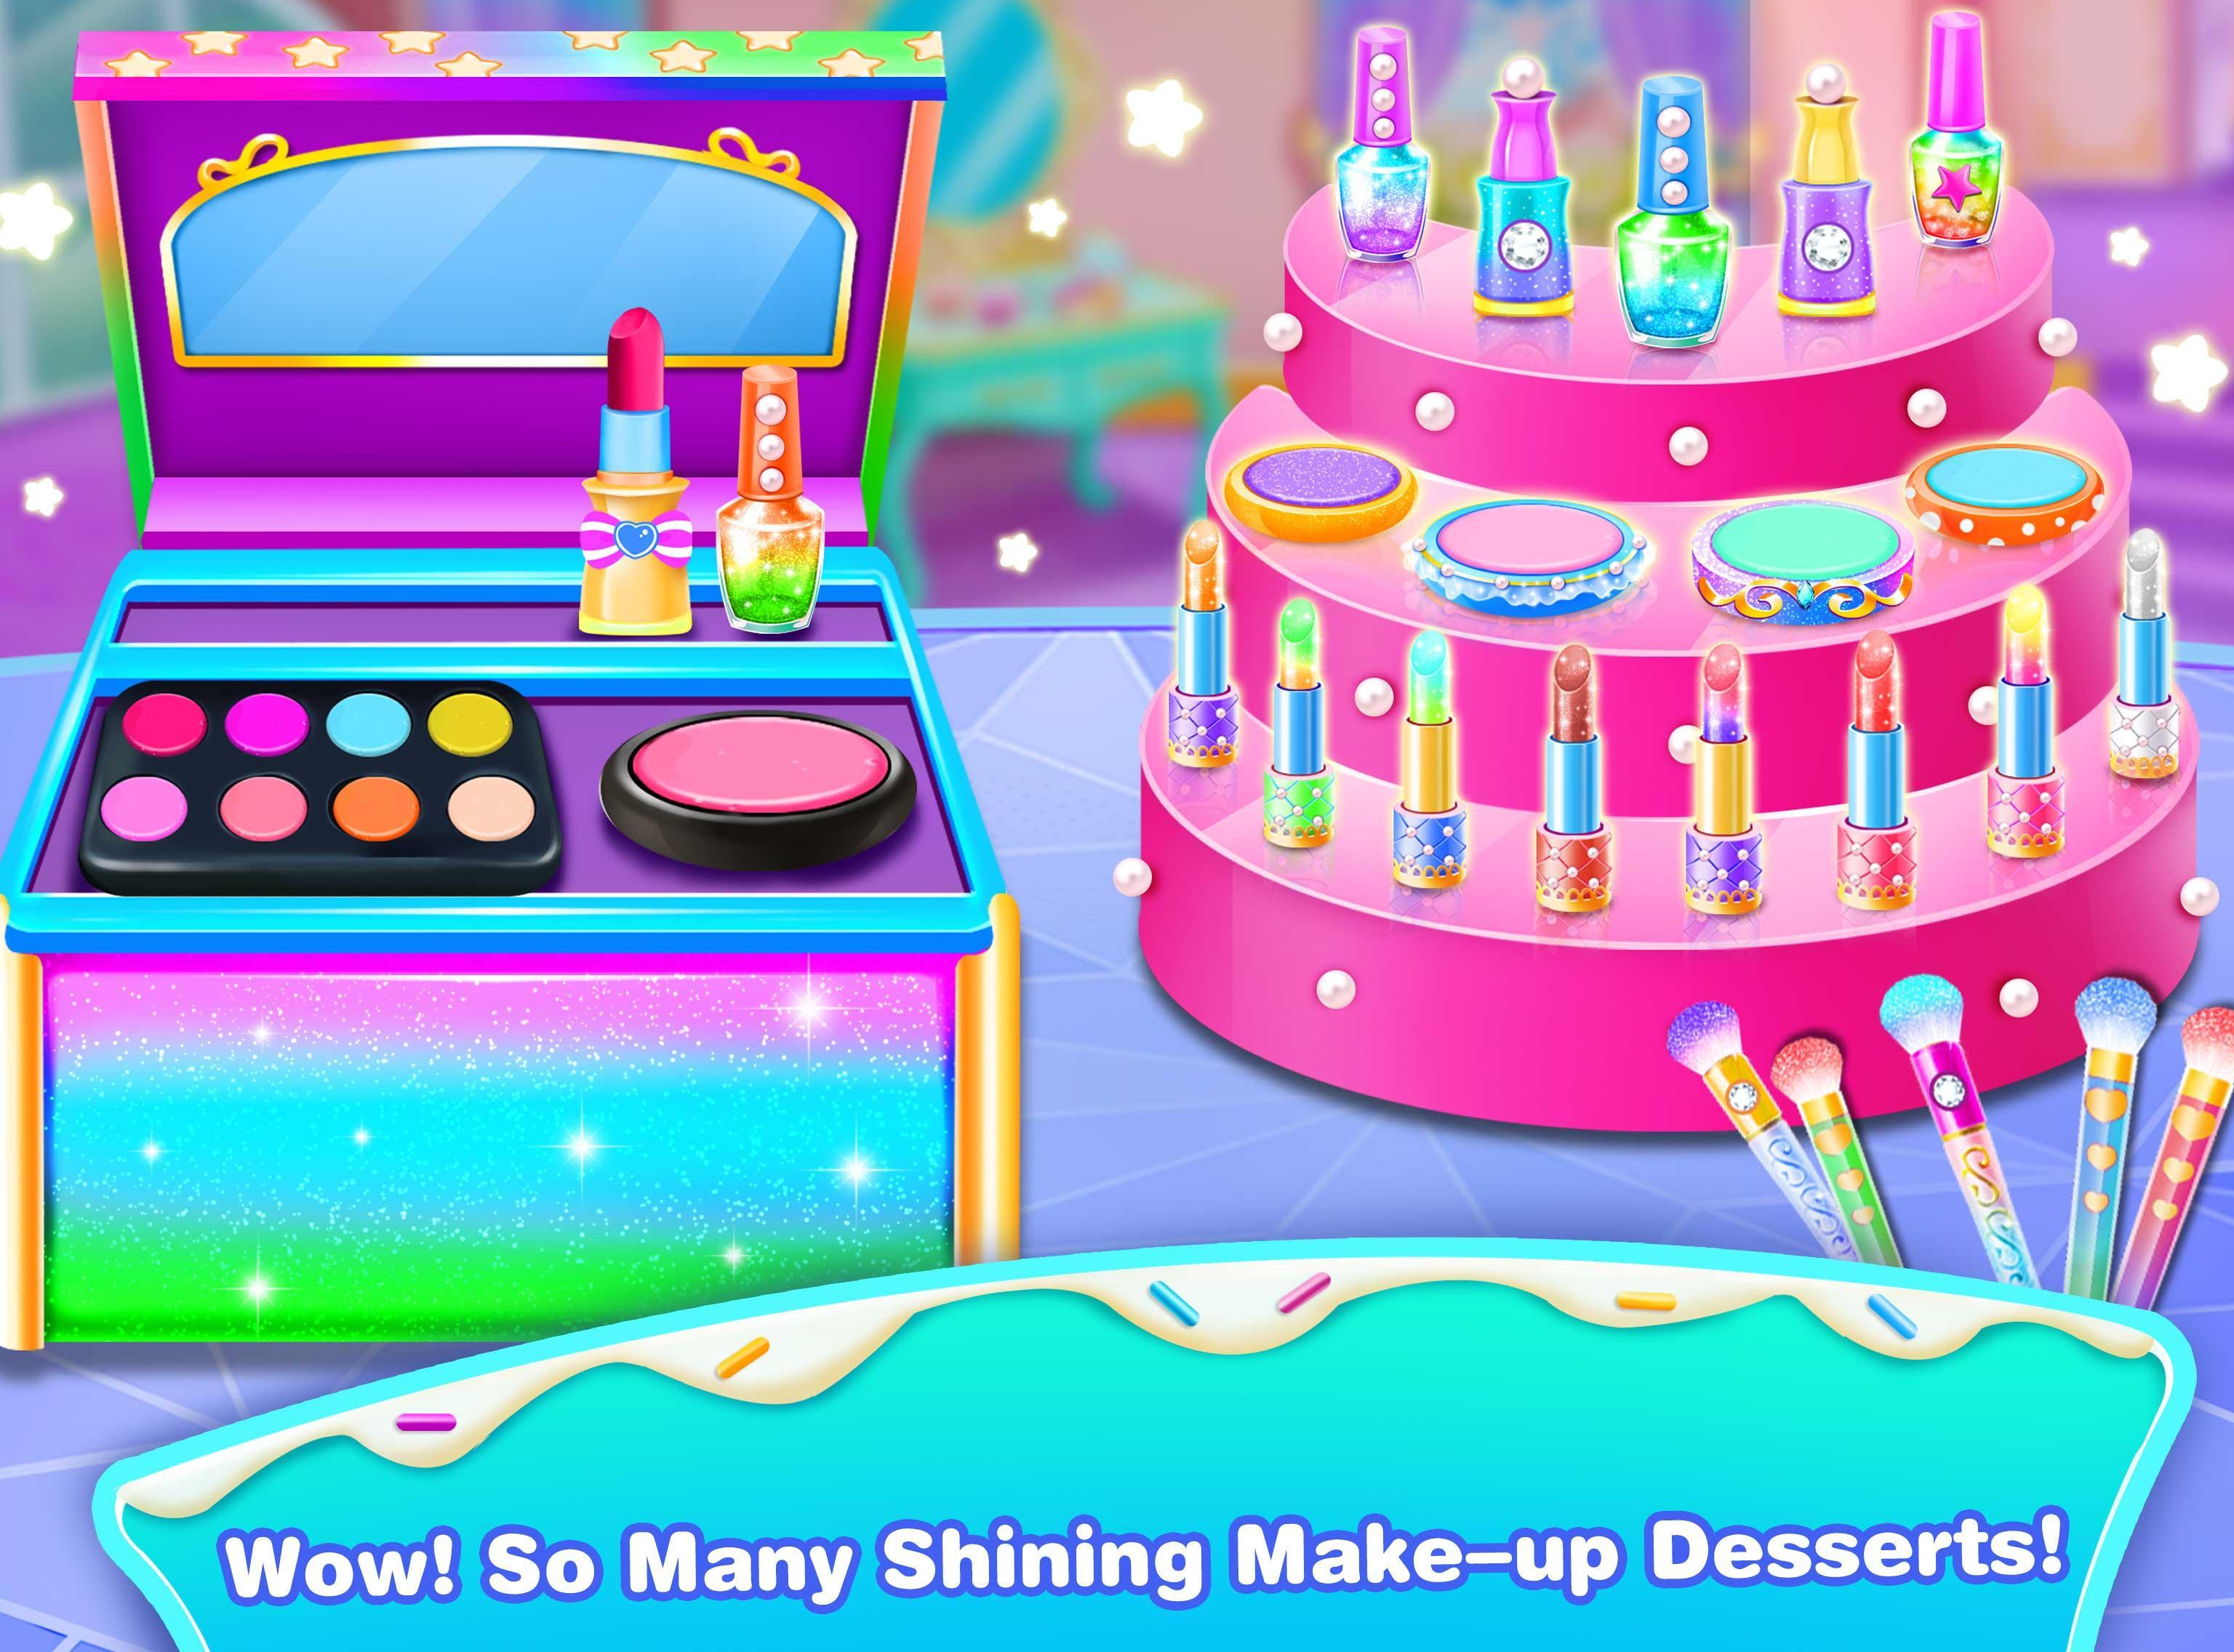 Girl Makeup Kit Comfy Cakes–Pretty Box Bakery Game cho Android - Tải về APK